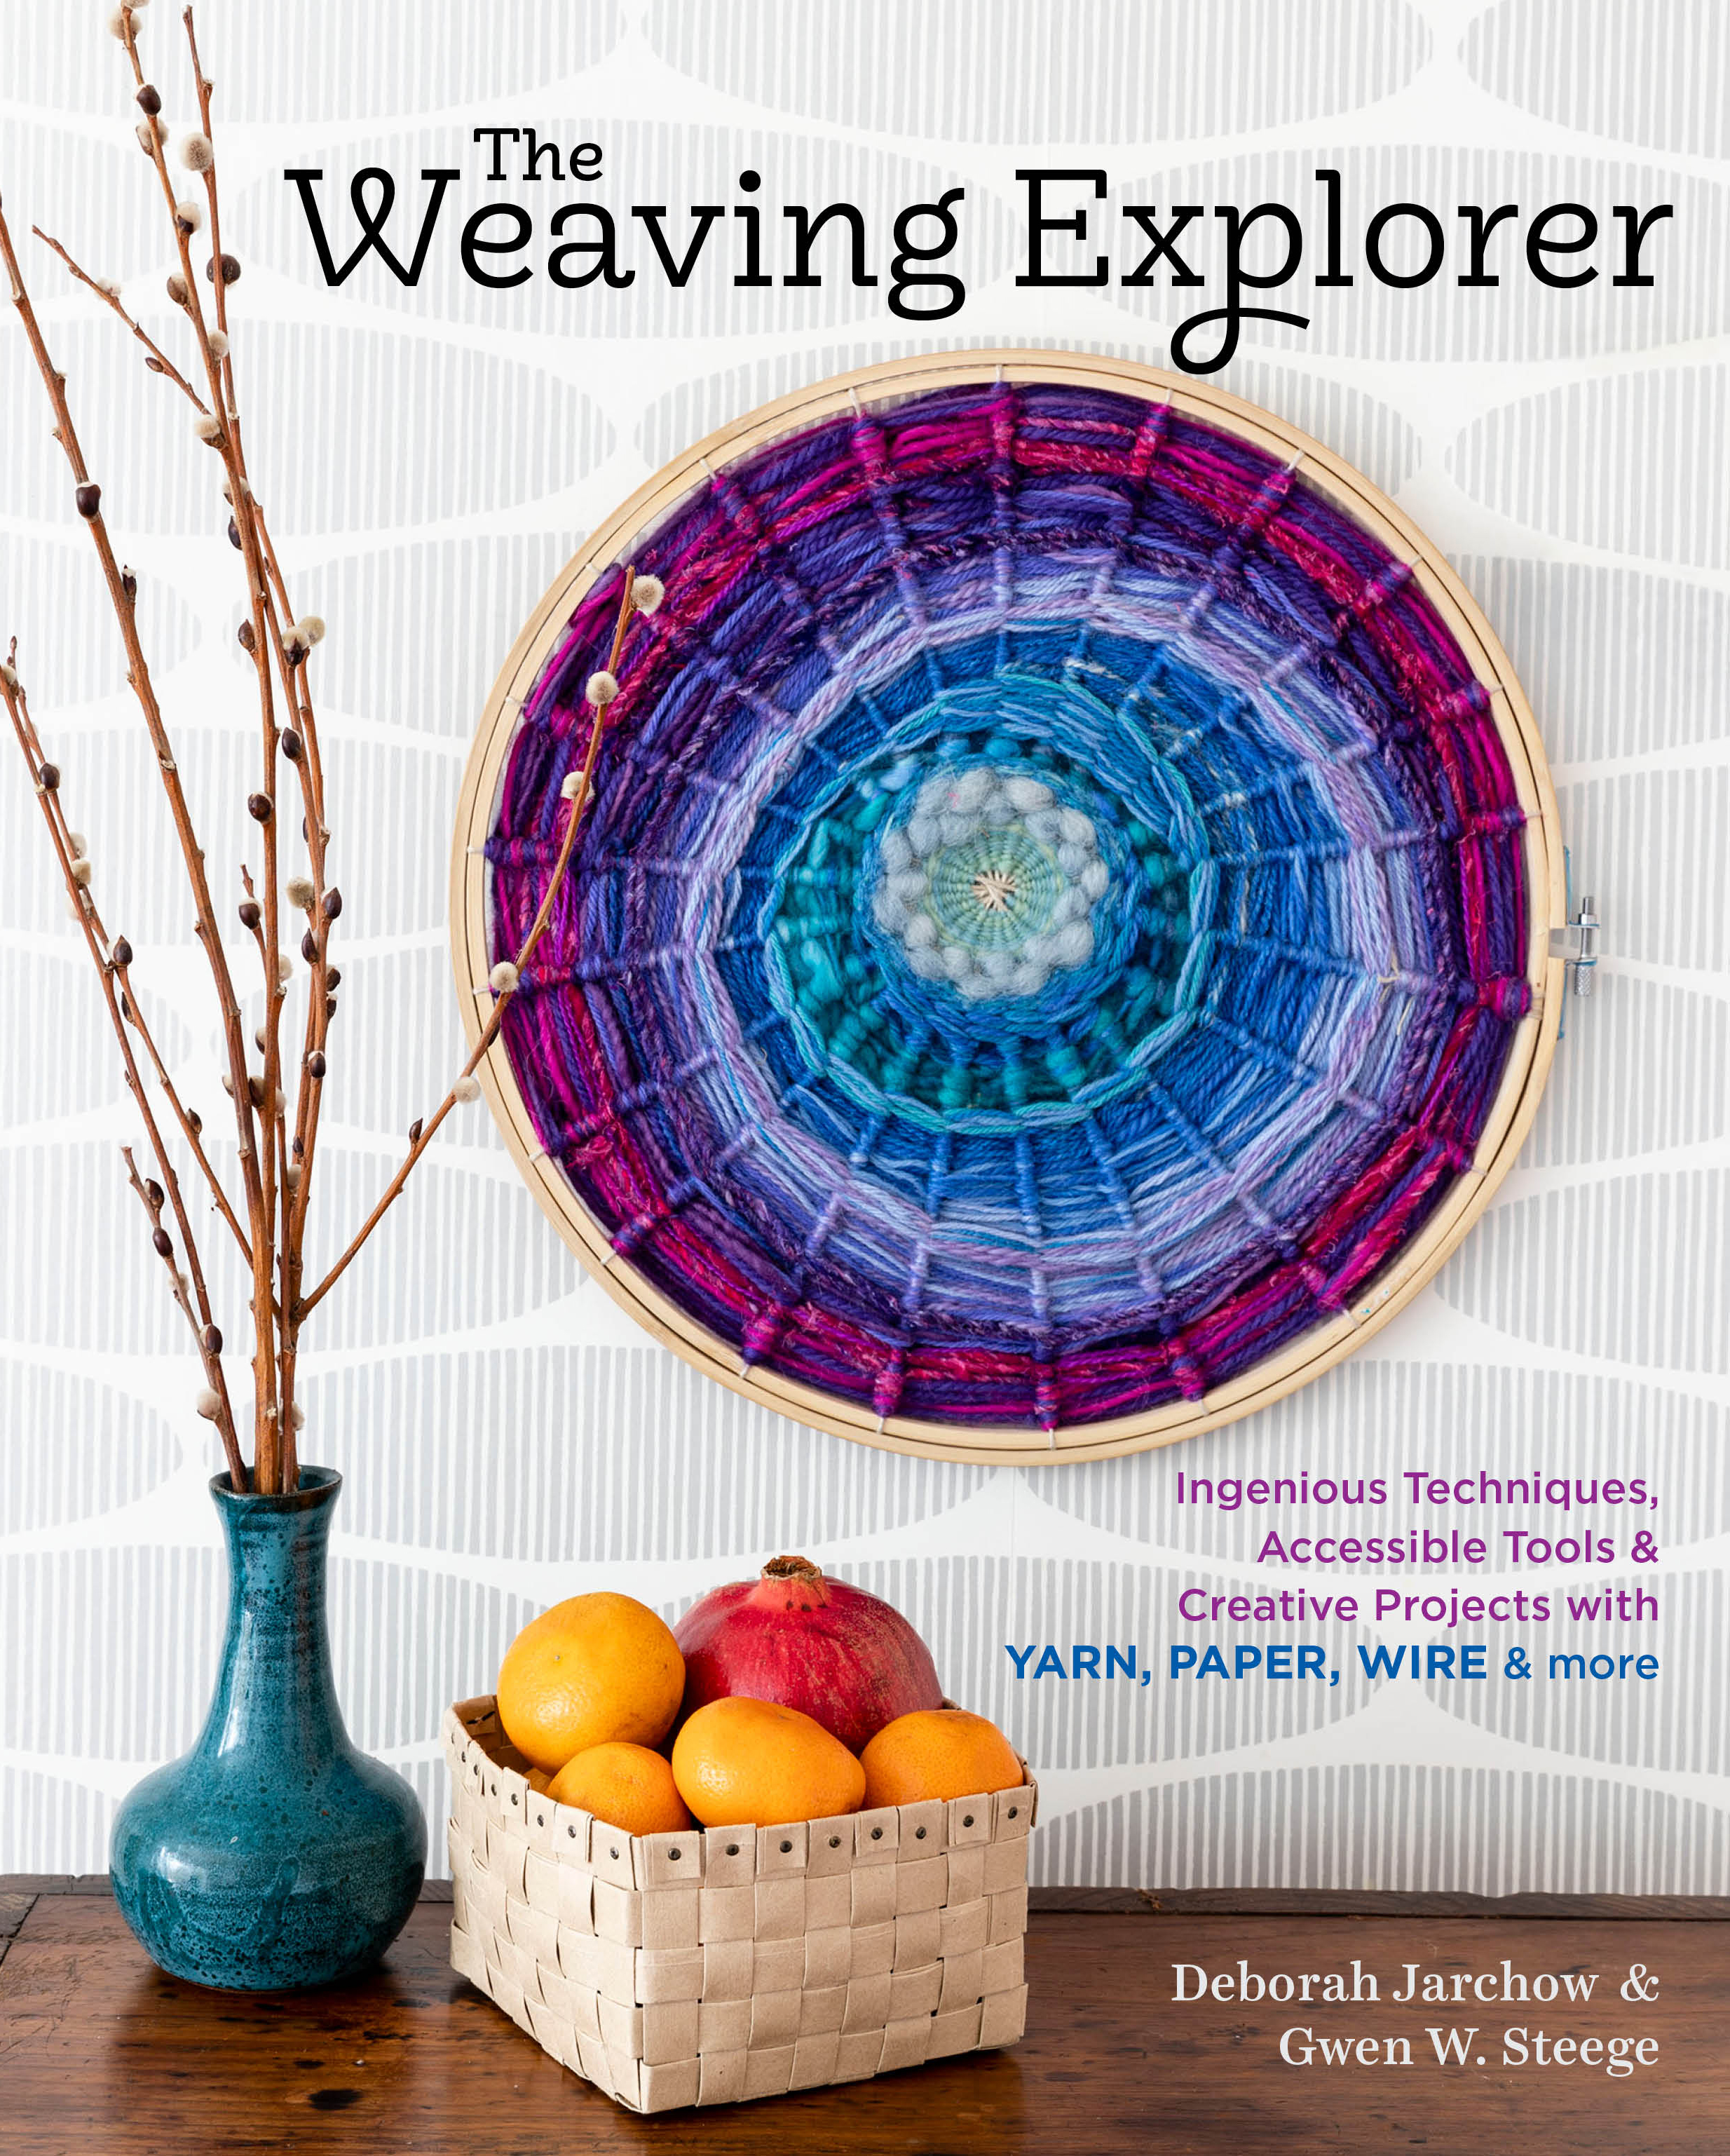 The Weaving Explorer Ingenious Techniques, Accessible Tools & Creative Projects with Yarn, Paper, Wire & More - Deborah Jarchow